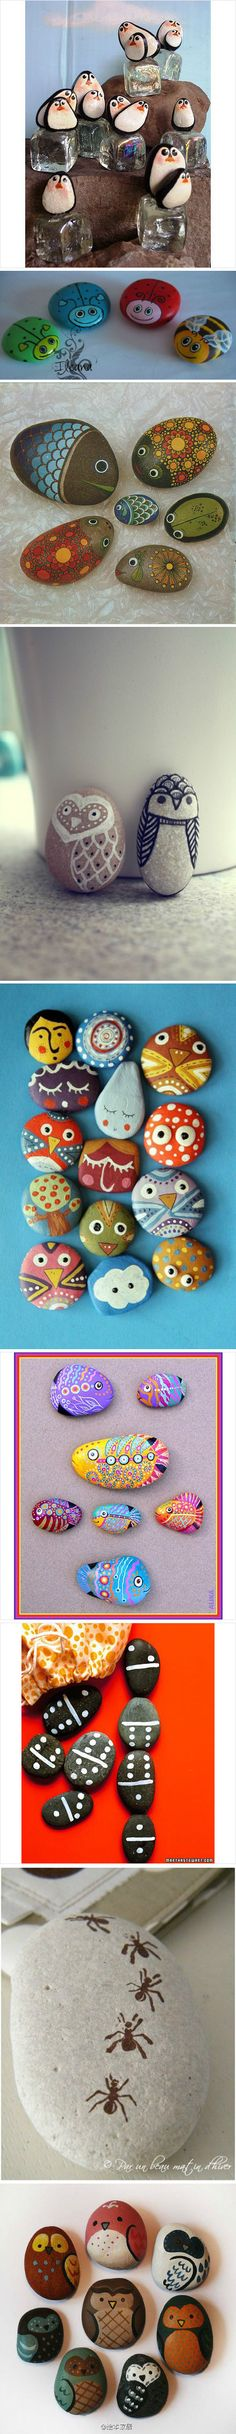 Fun project for found rocks   Painted rocks --   I'm dying to make some of these, but I need to find some rocks that would work!